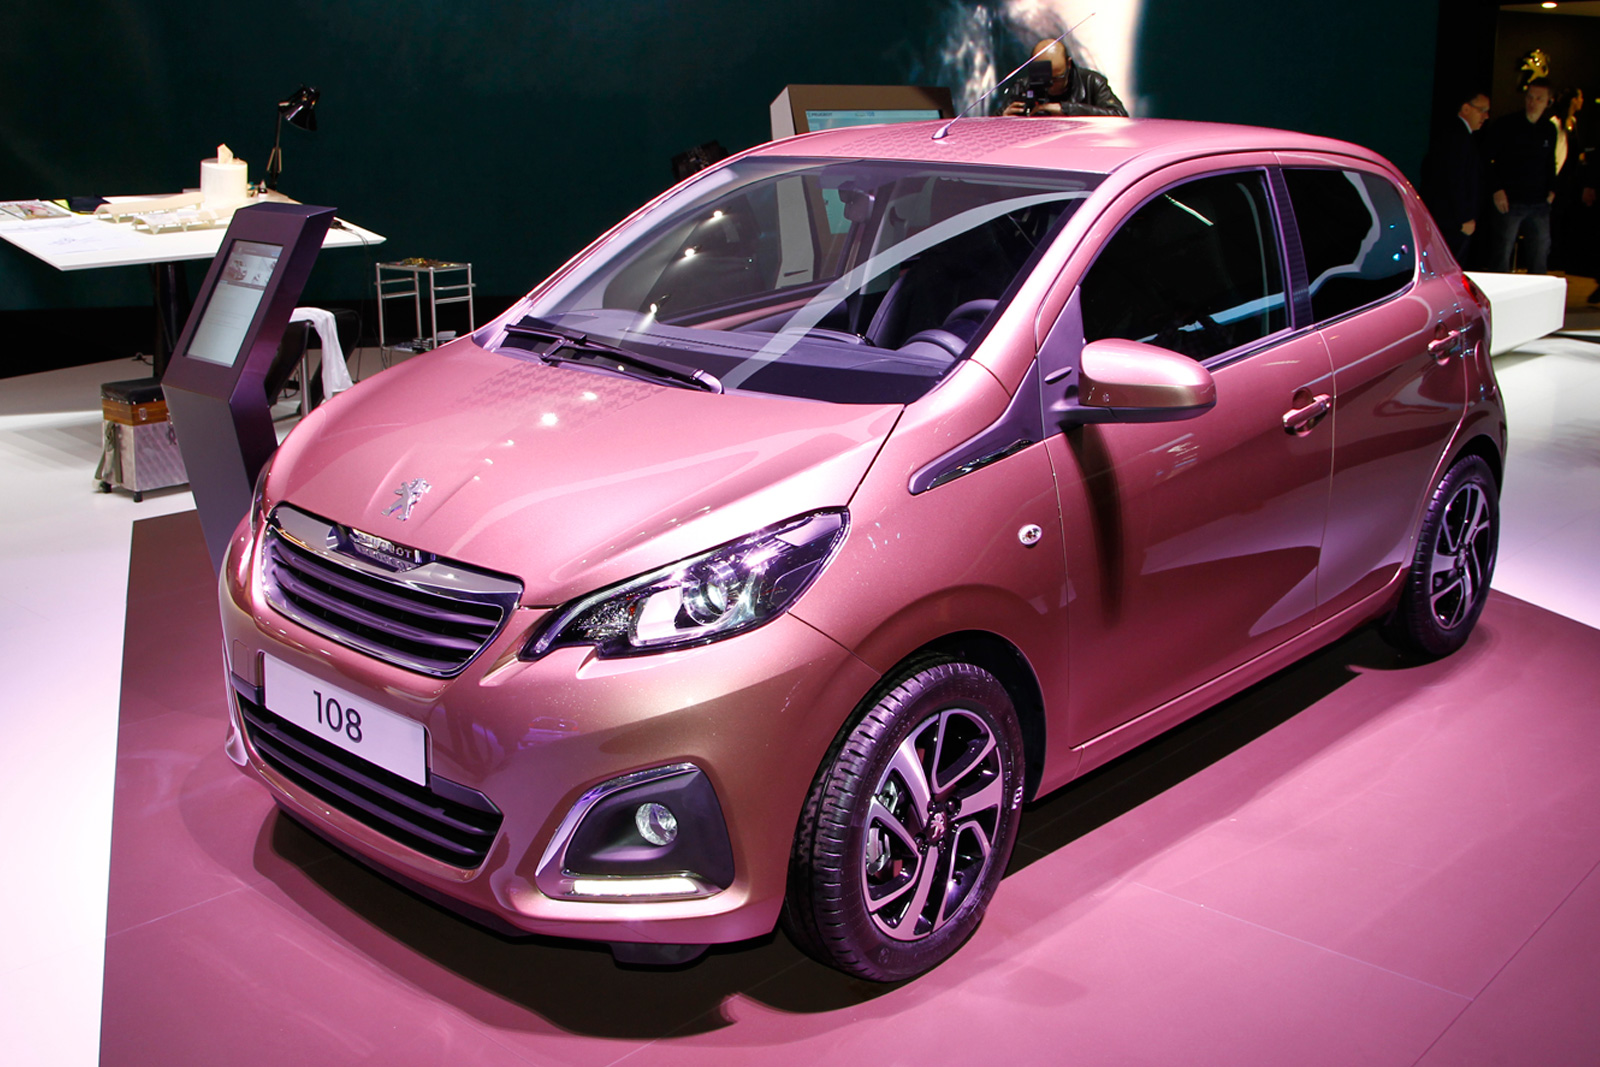 New Peugeot 108 Priced From £8245